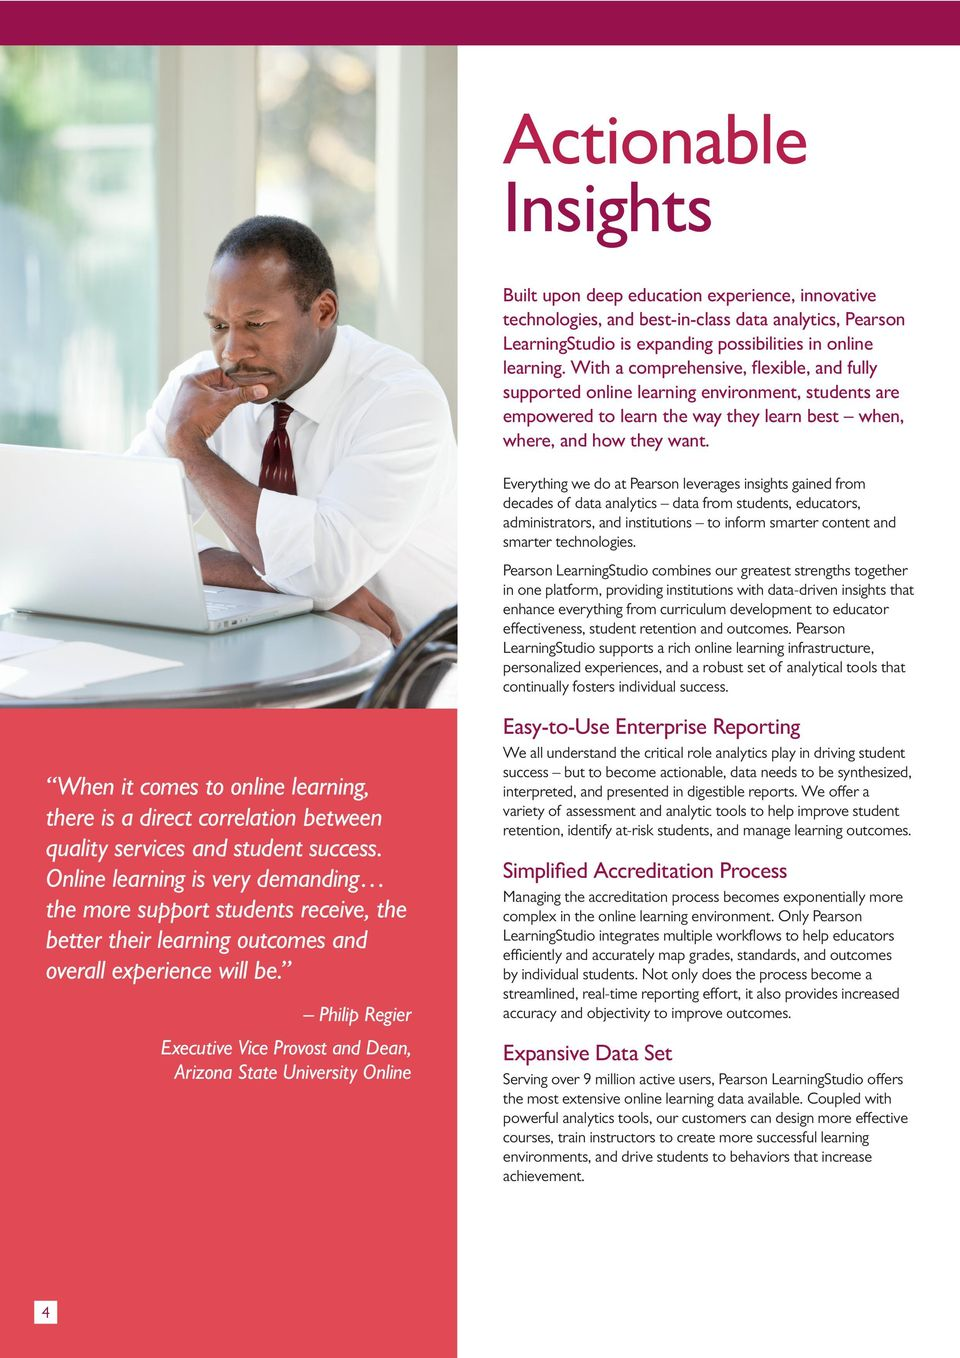 Everything we do at Pearson leverages insights gained from decades of data analytics data from students, educators, administrators, and institutions to inform smarter content and smarter technologies.